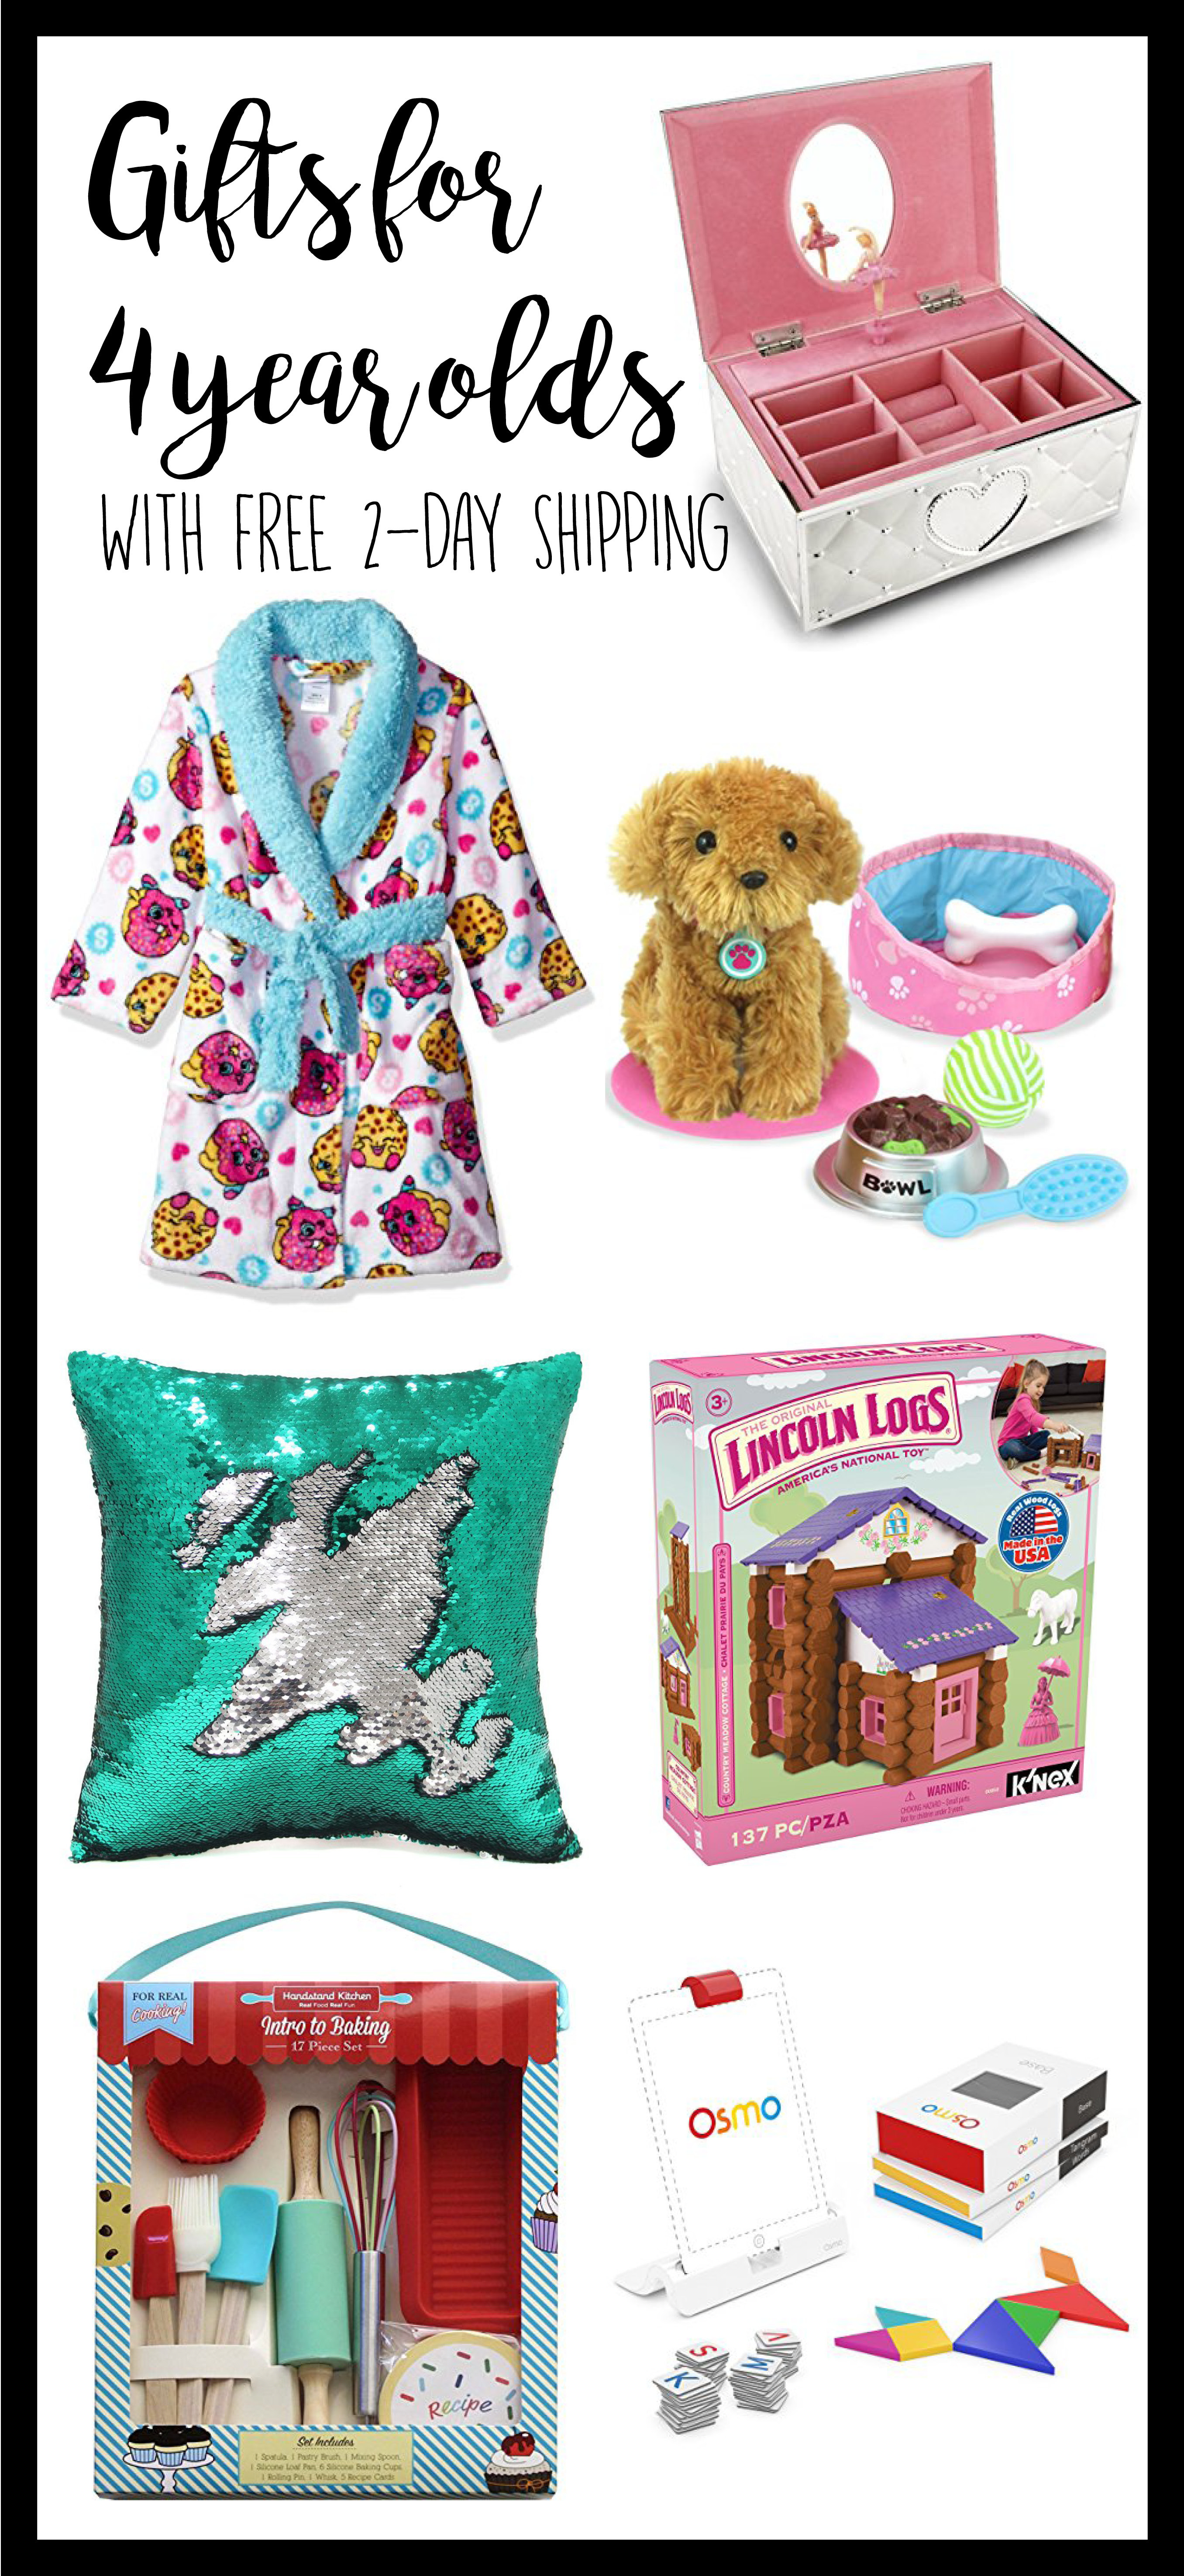 Best ideas about 4 Year Old Birthday Gift Ideas . Save or Pin 4 Year Old Gift Ideas Gift ideas for 4 year old Girls Now.